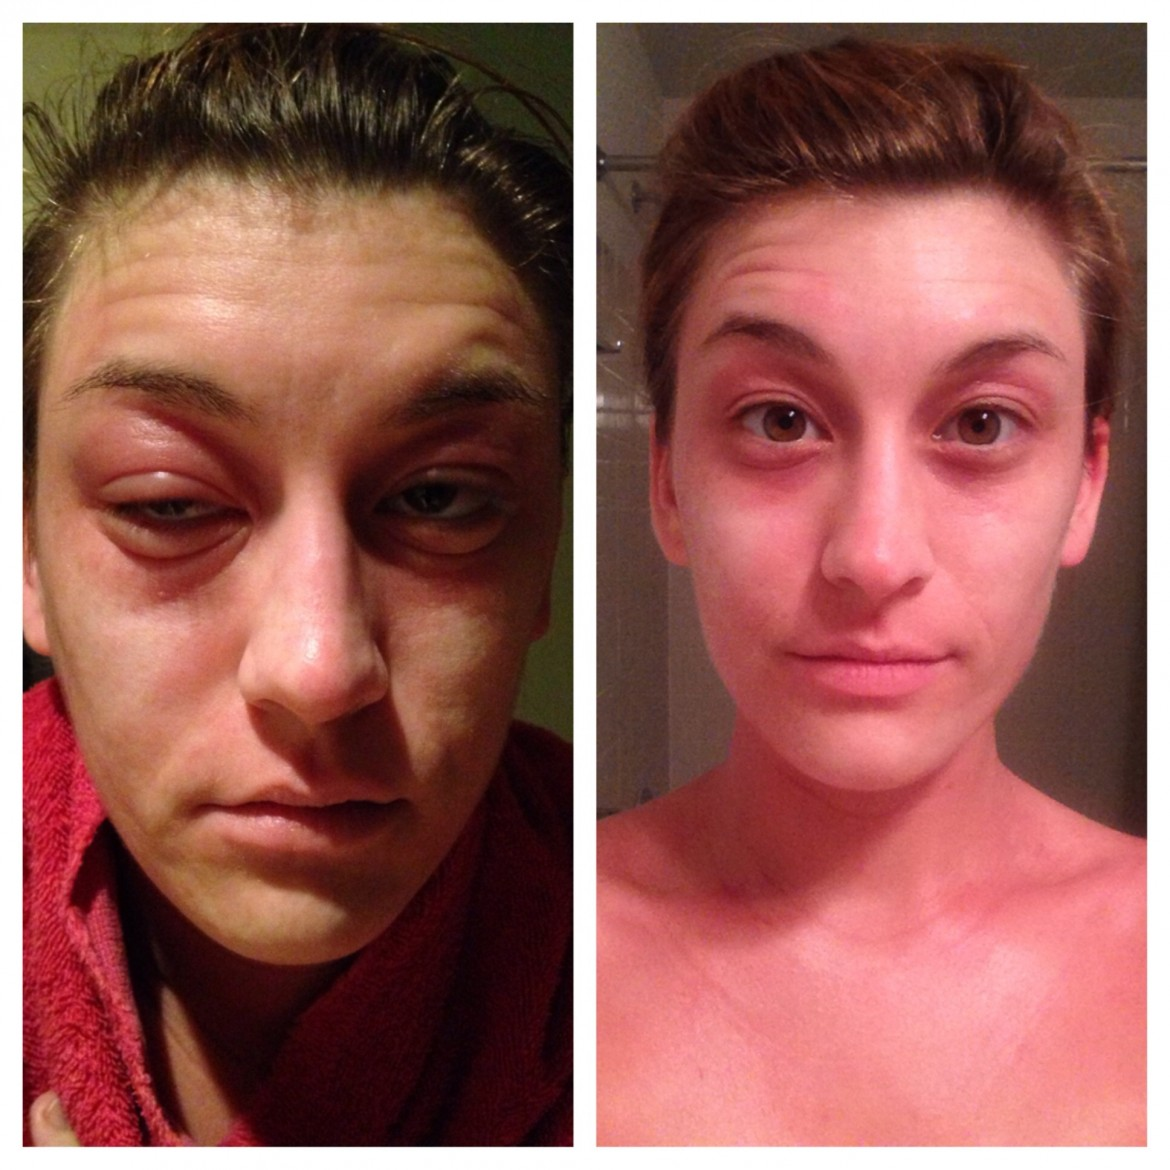 Bactrim Allergic Reaction Before